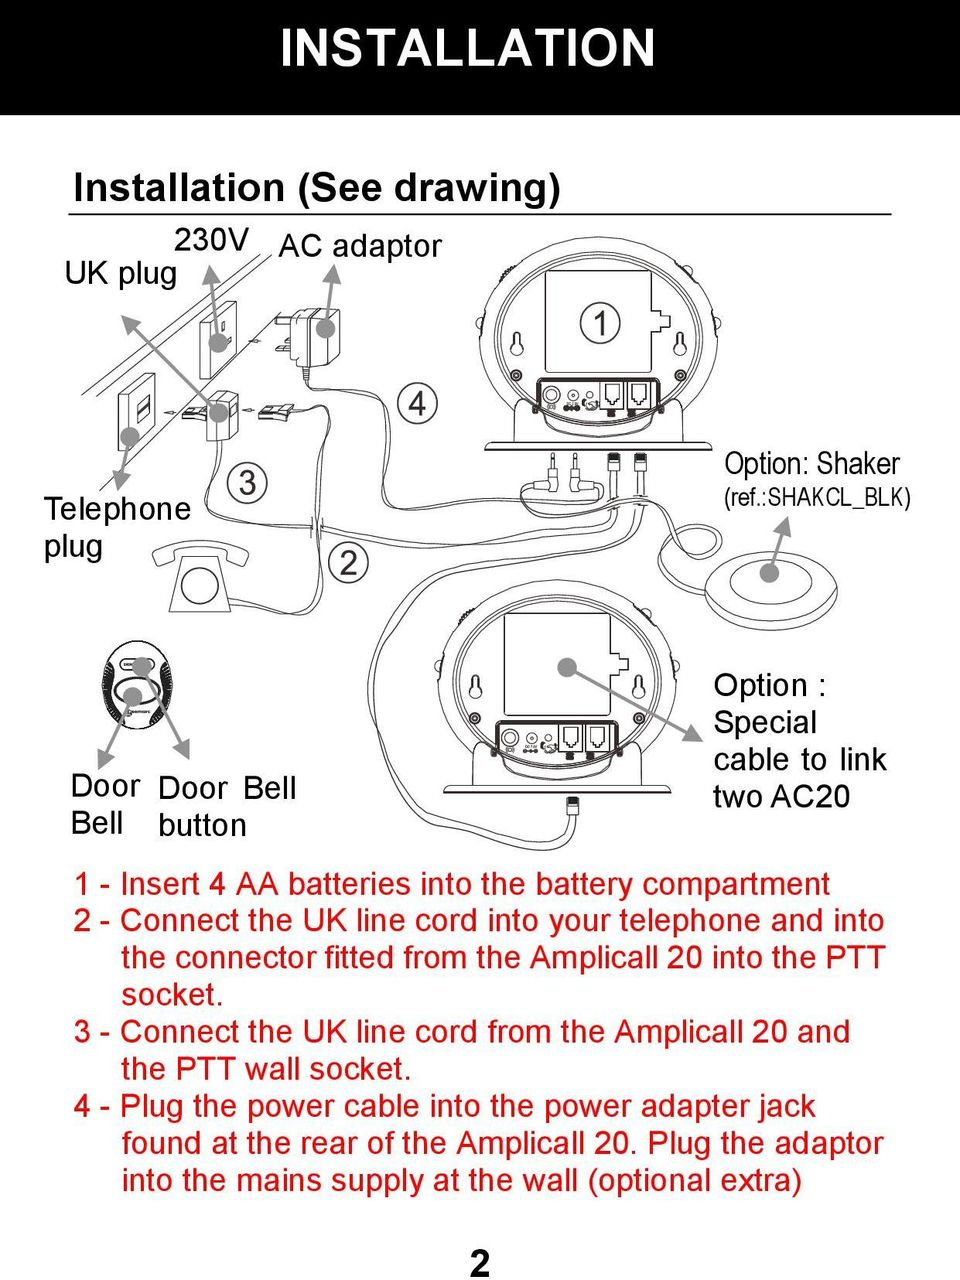 Connect the UK line cord into your telephone and into the connector fitted from the Amplicall 20 into the PTT socket.